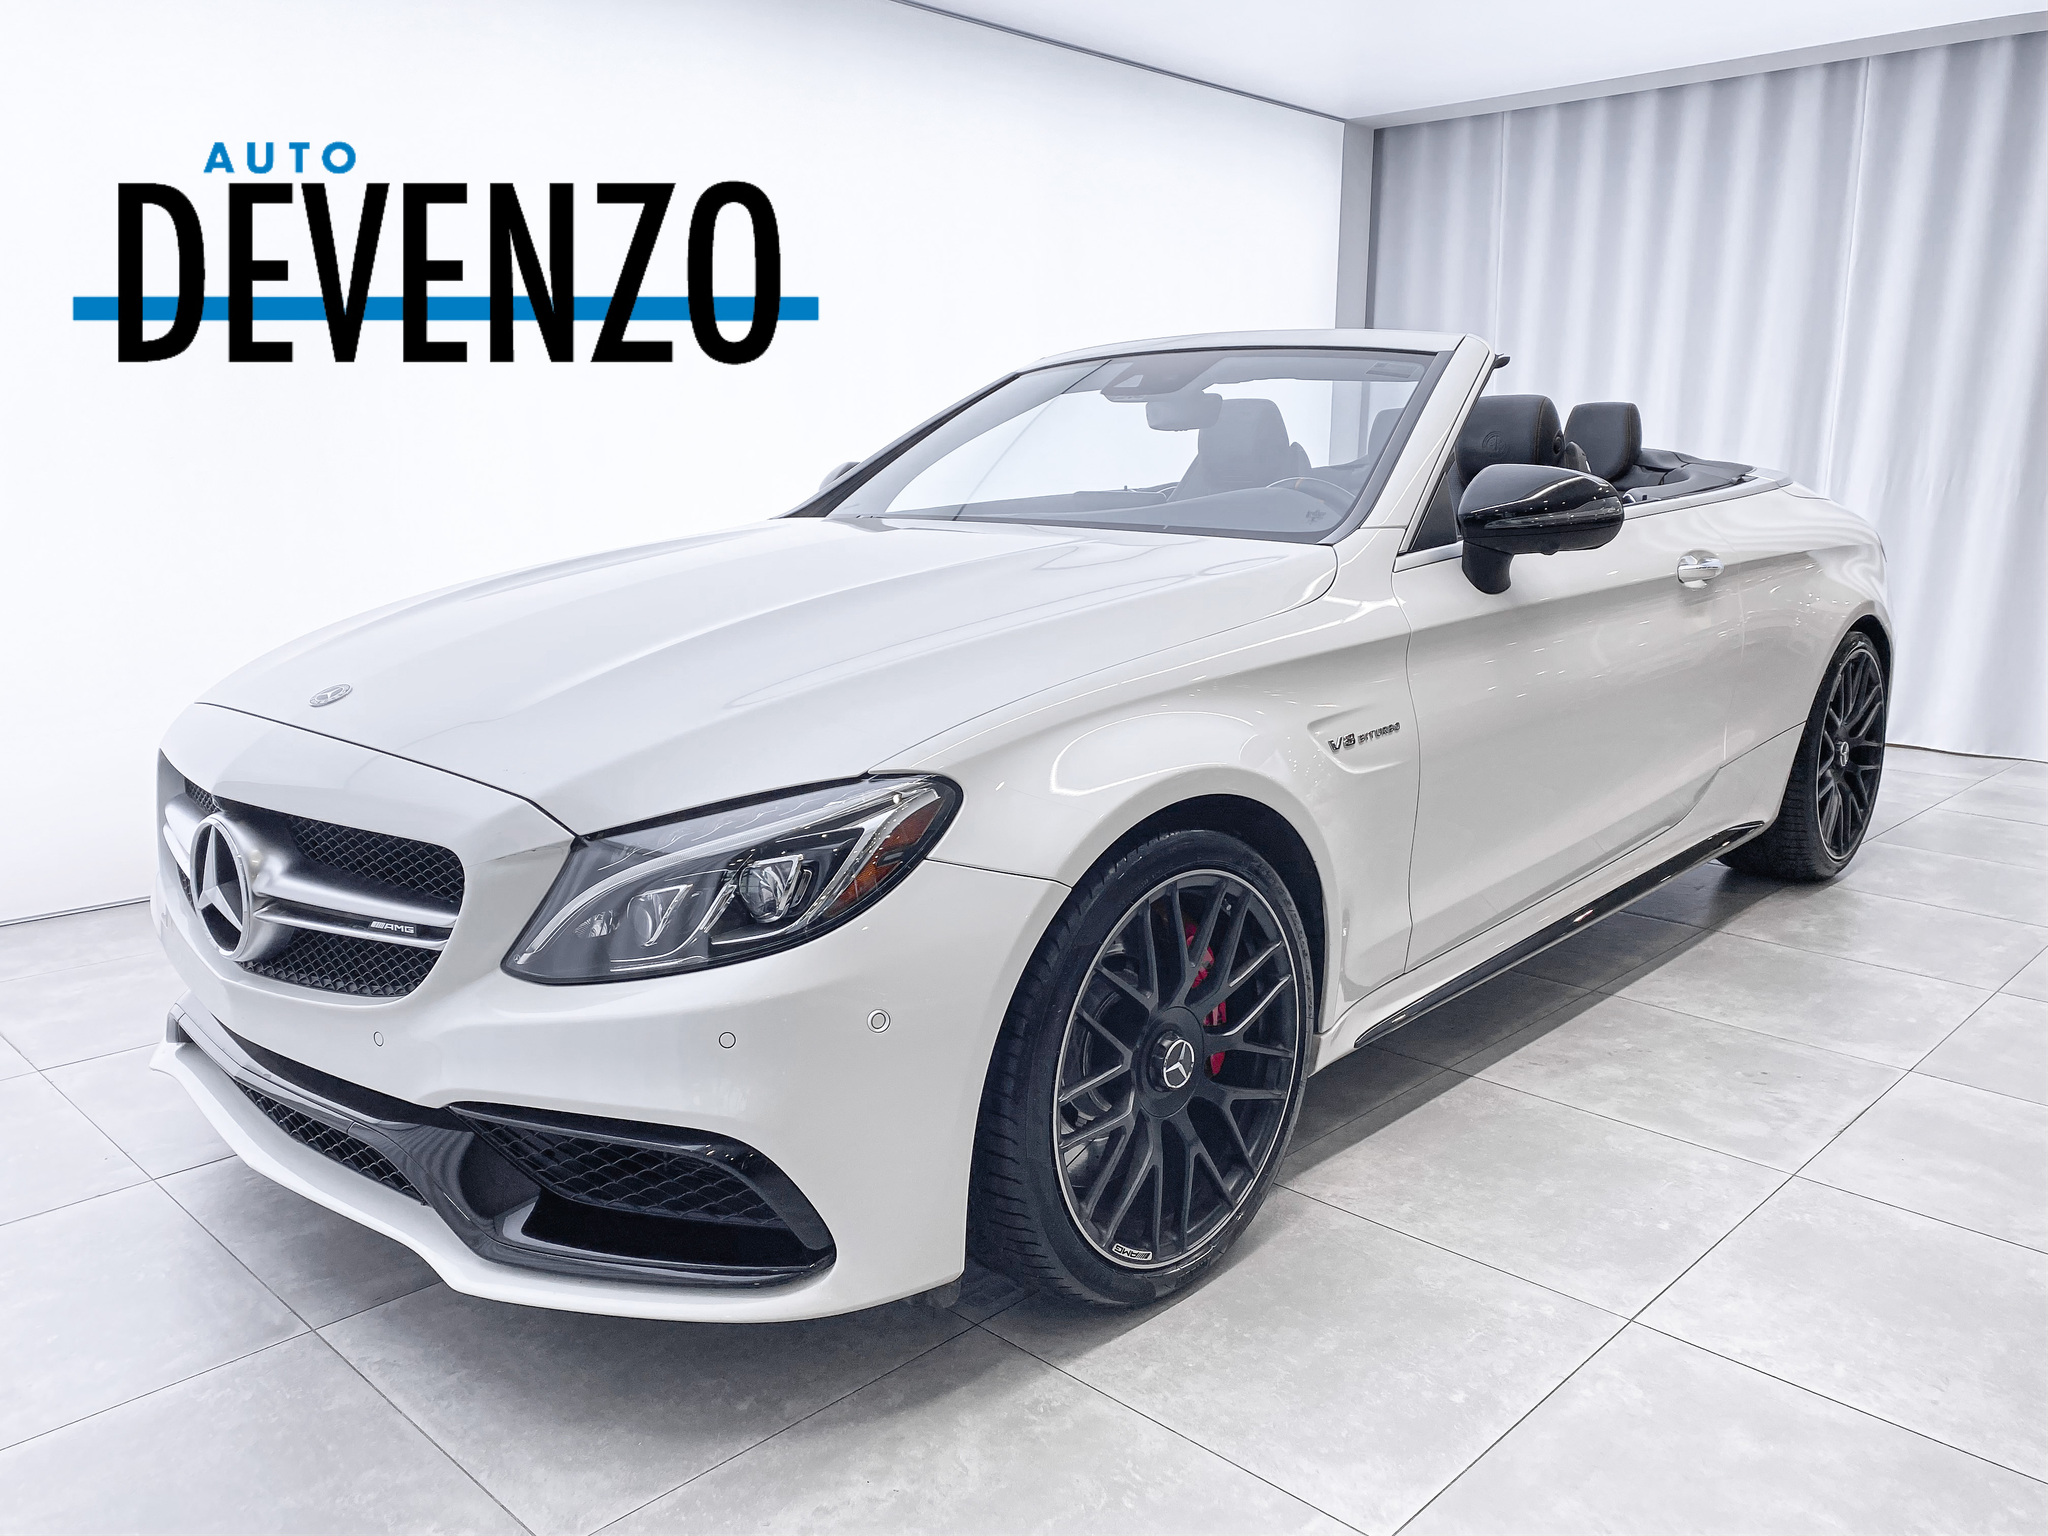 2018 Mercedes-Benz C-Class AMG C63 S Cabriolet 503HP NIGHT PACKAGE AIR SCARF complet